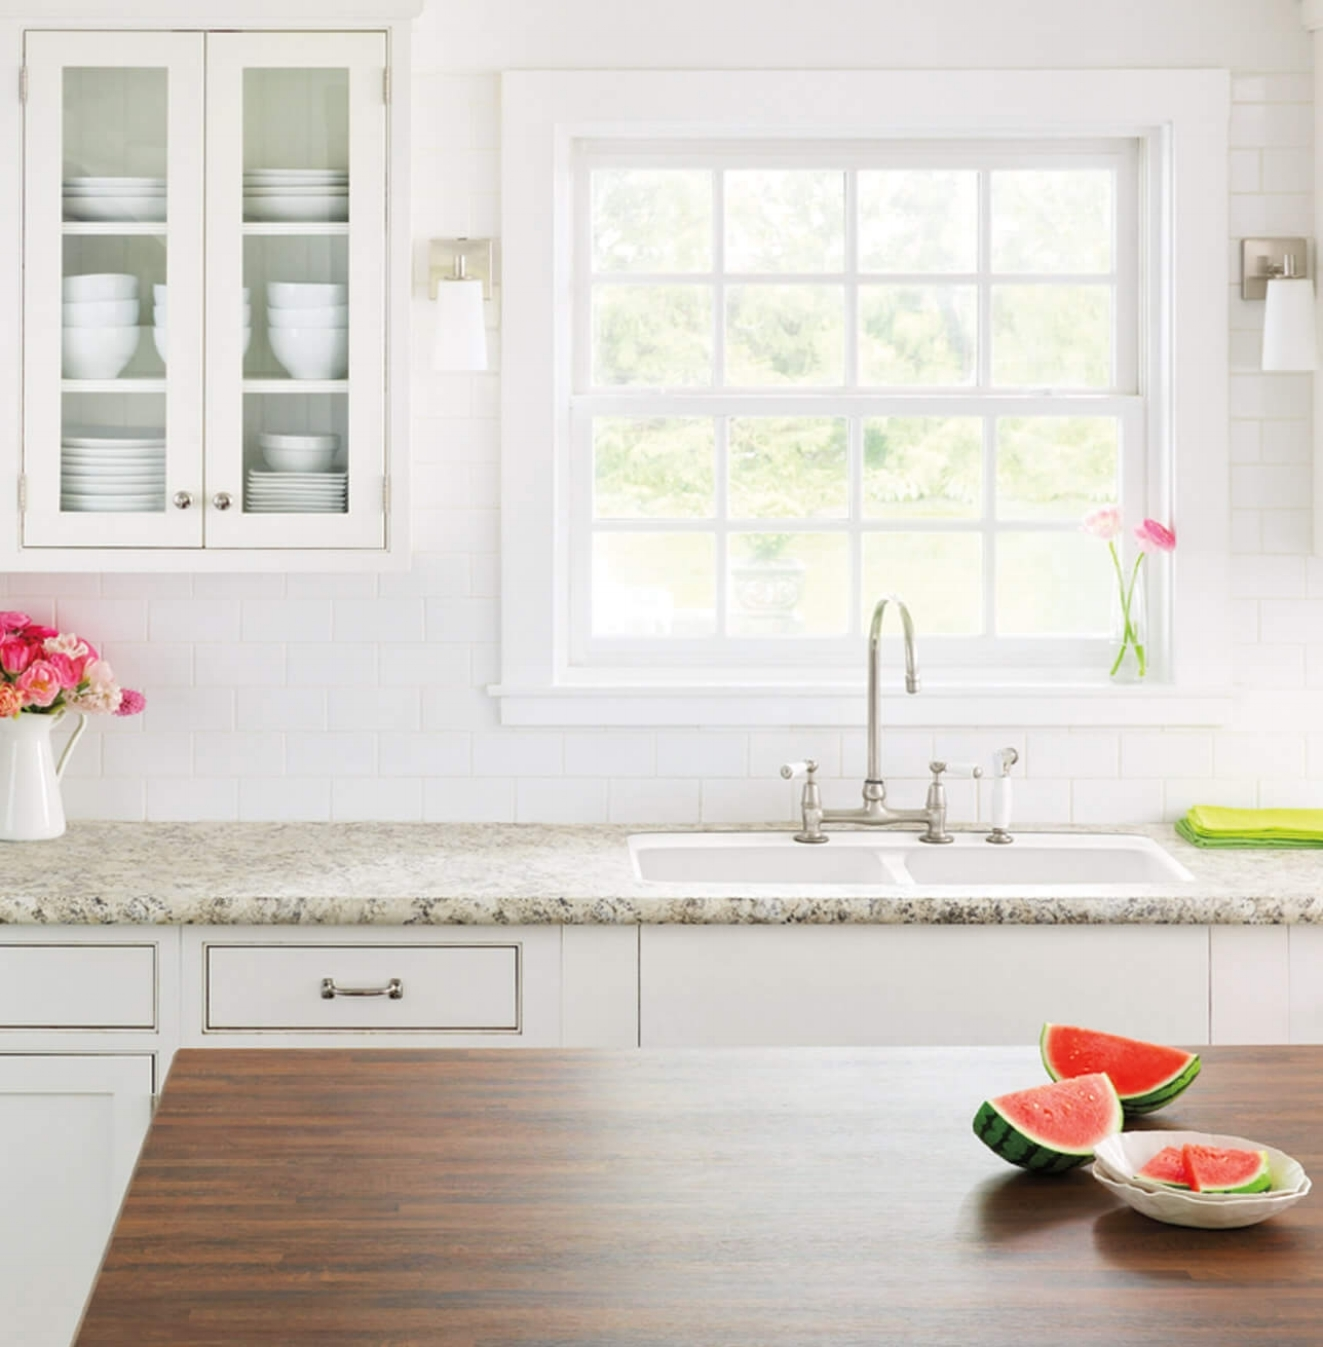 - The Kitchen Remodel Countertop Advice You Should NEVER Take